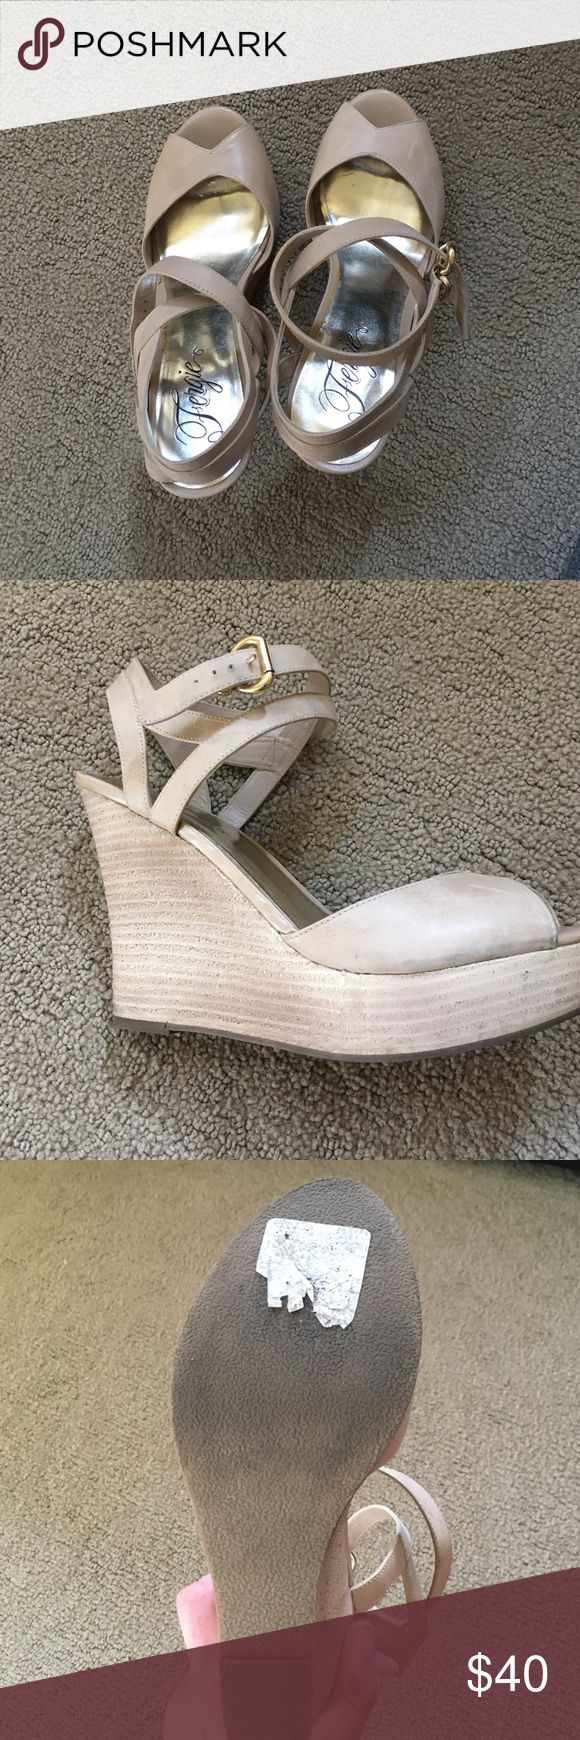 Fergie Wedge ankle wrap shoes Super cute wedge Fergie shoes.  Love these and so fun, too high for me.  41/2 inch heel and 1 inch platform.  Would be fun to wear with skinnies or a cute summer dress. 💕 Fergie Shoes Wedges